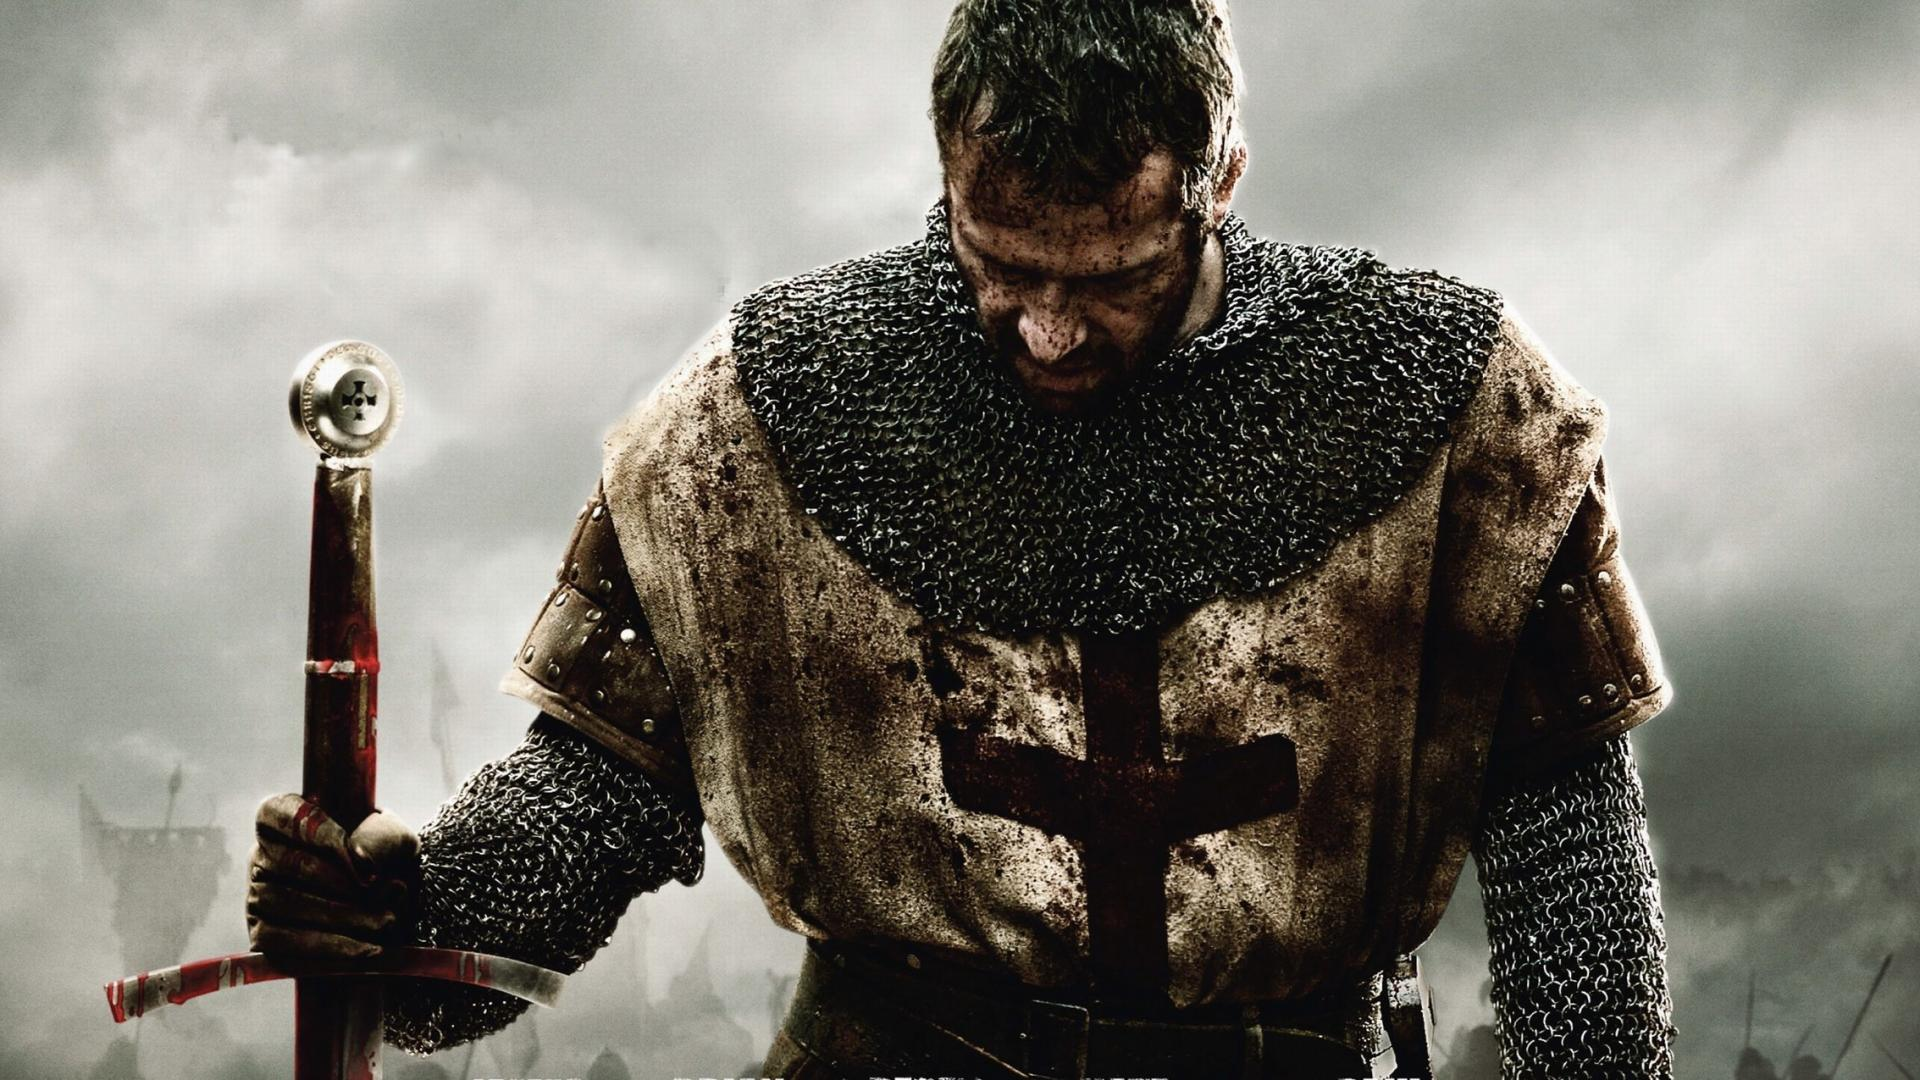 Ironclad Knight Medieval Sword Armor Blood James Purefoy wallpaper 1920x1080